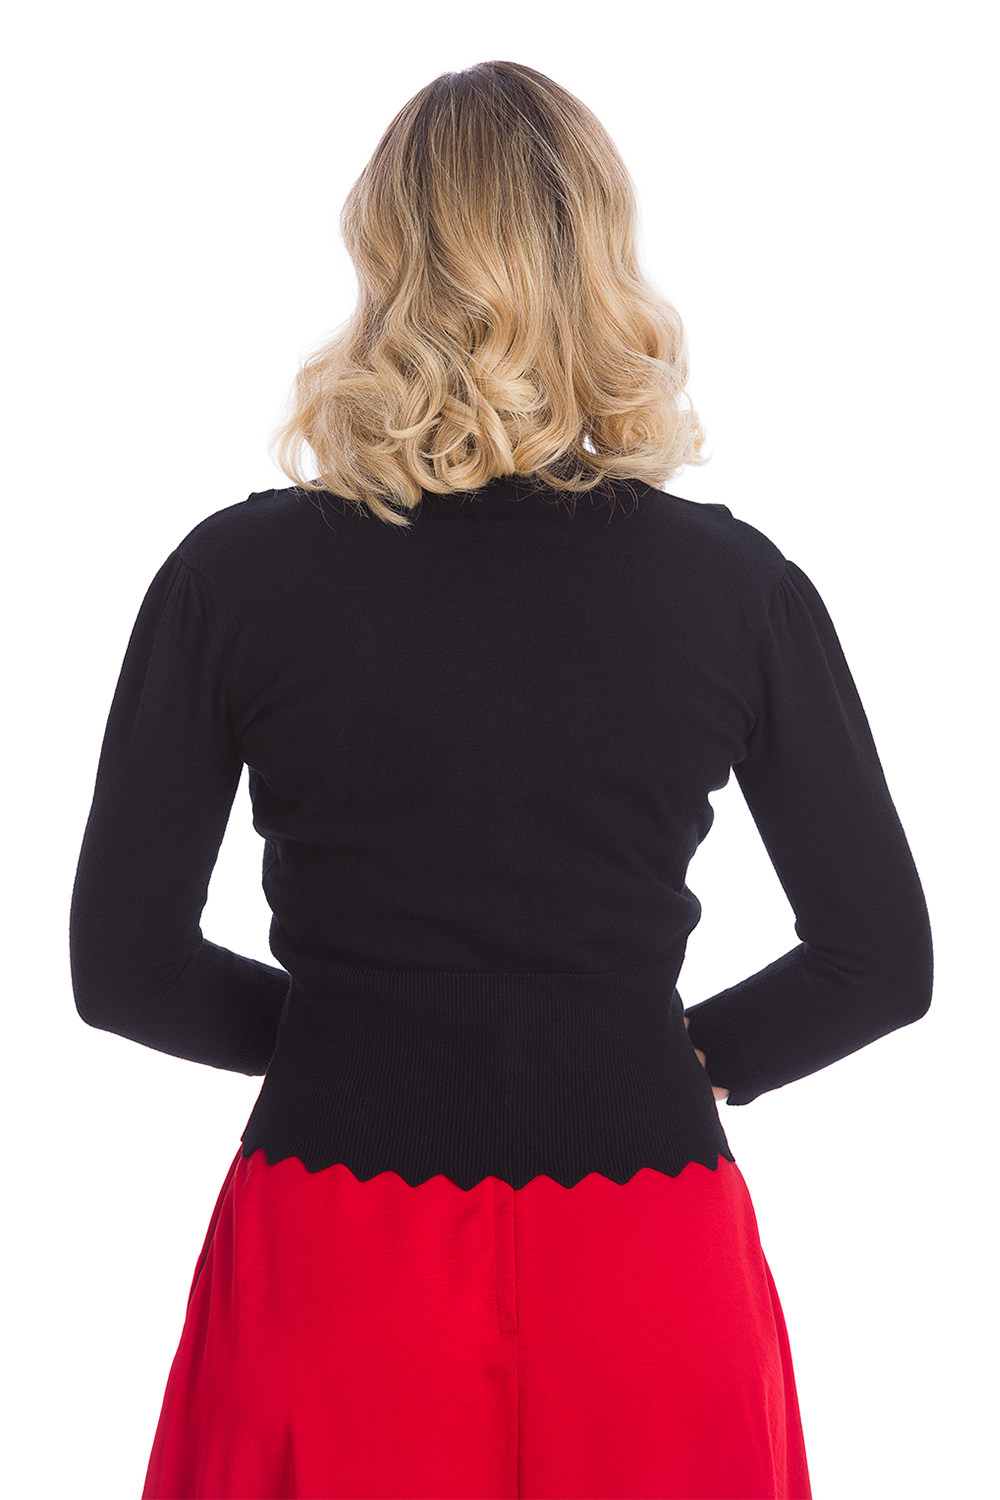 Banned Bunny Hop Knit Cardigan In Black